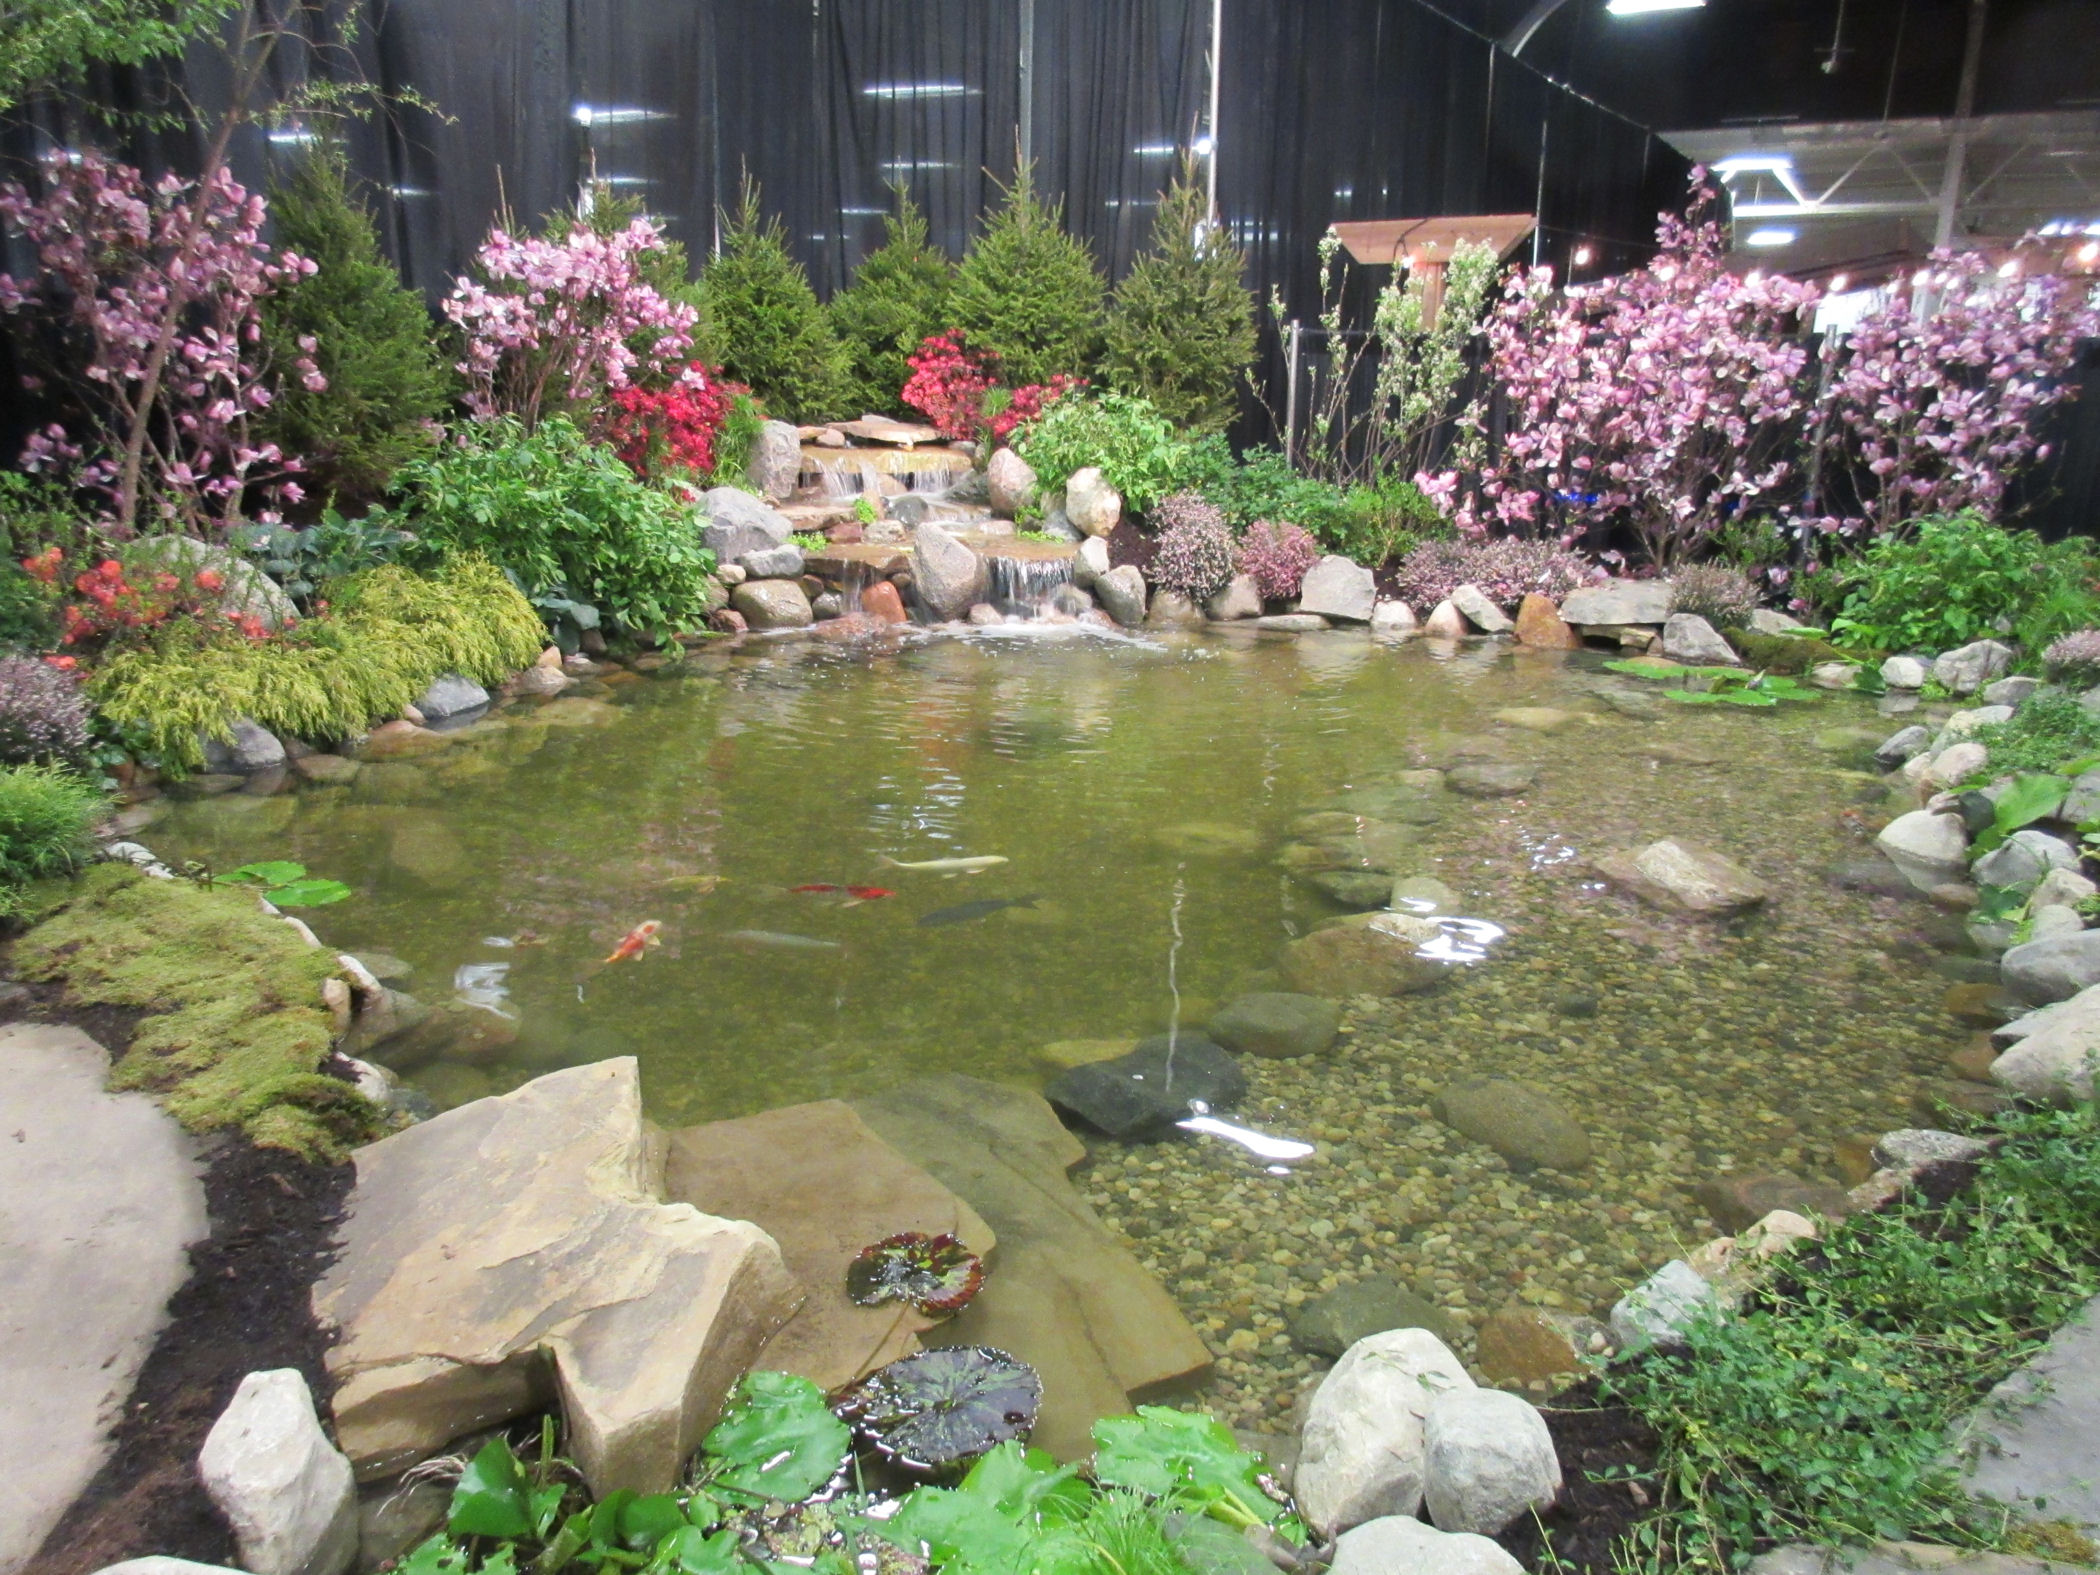 More Than Flowers at the Indiana Flower & Patio Show 2017